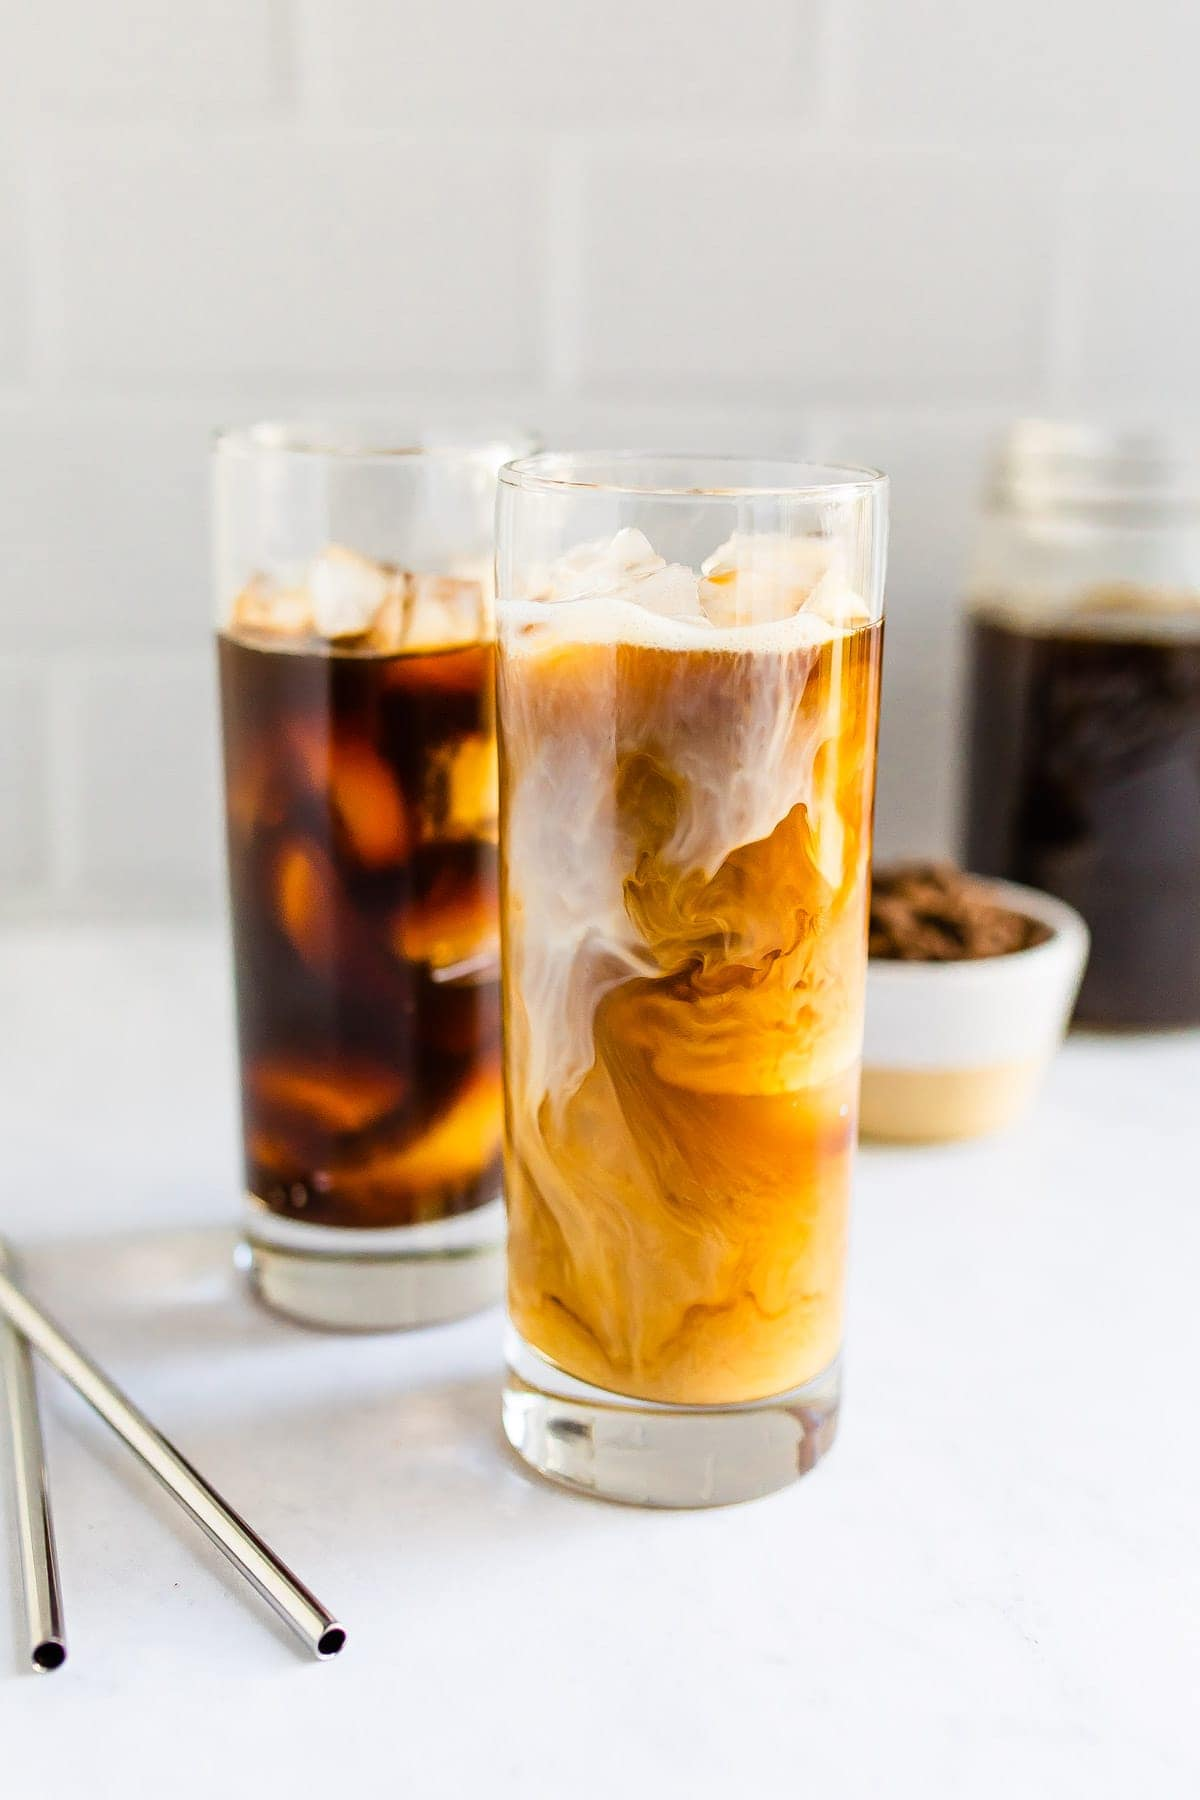 Two tall glasses of cold brew. One is black and one had cream being swirled in.